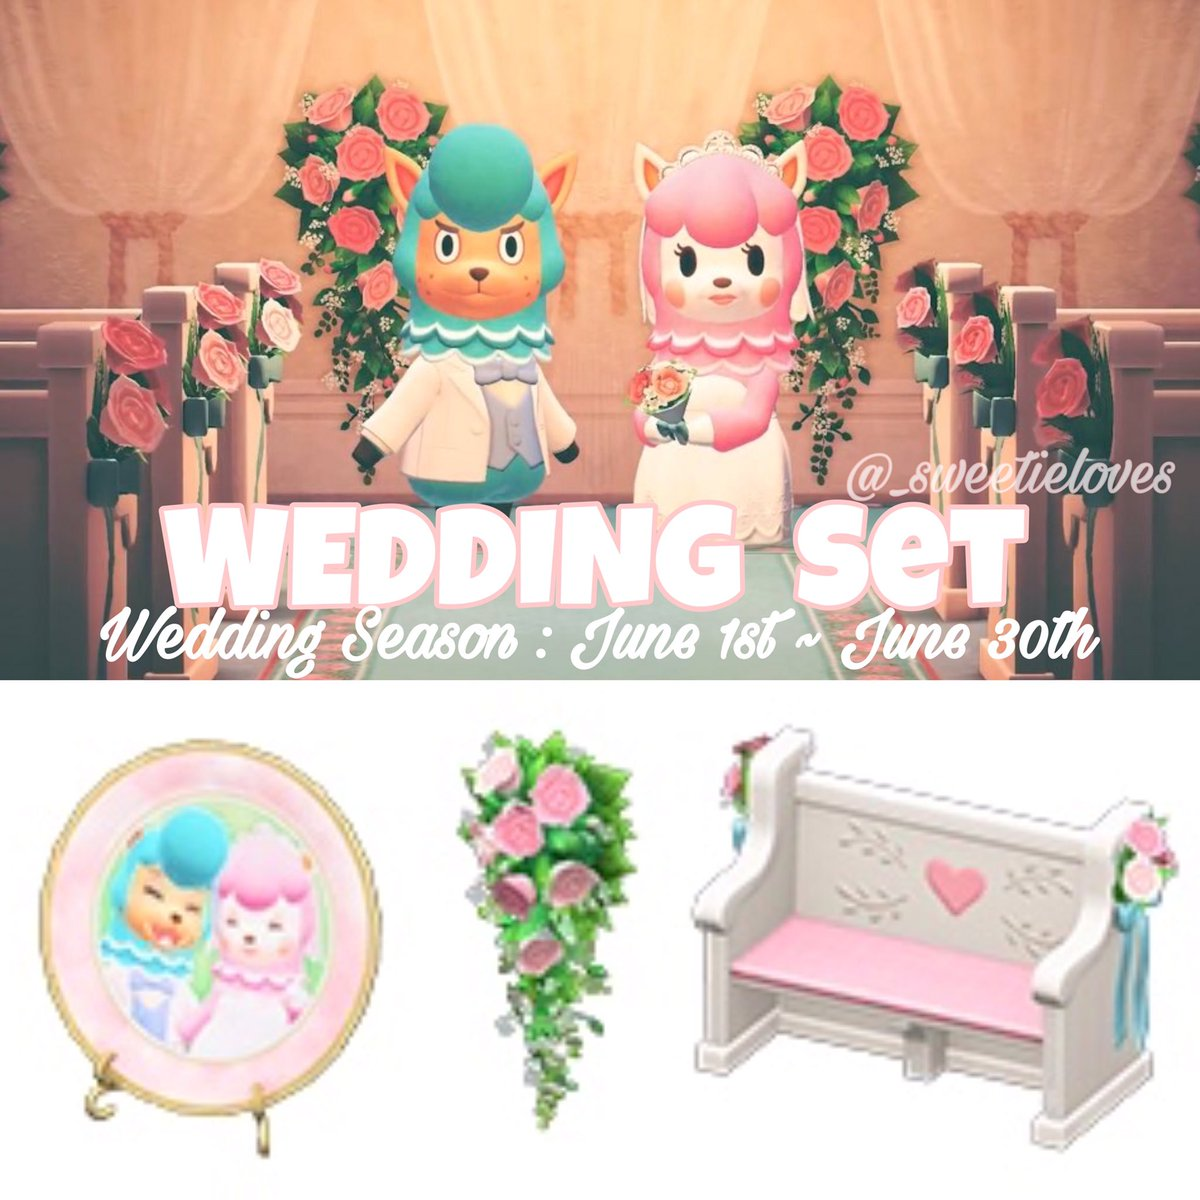 Lala On Twitter Wedding Set You Can See The Full Collection On My Instagram Post Second Slide Https T Co S9j5j2hnck Acnhspoilers Acnh Https T Co Aqvvul22tr